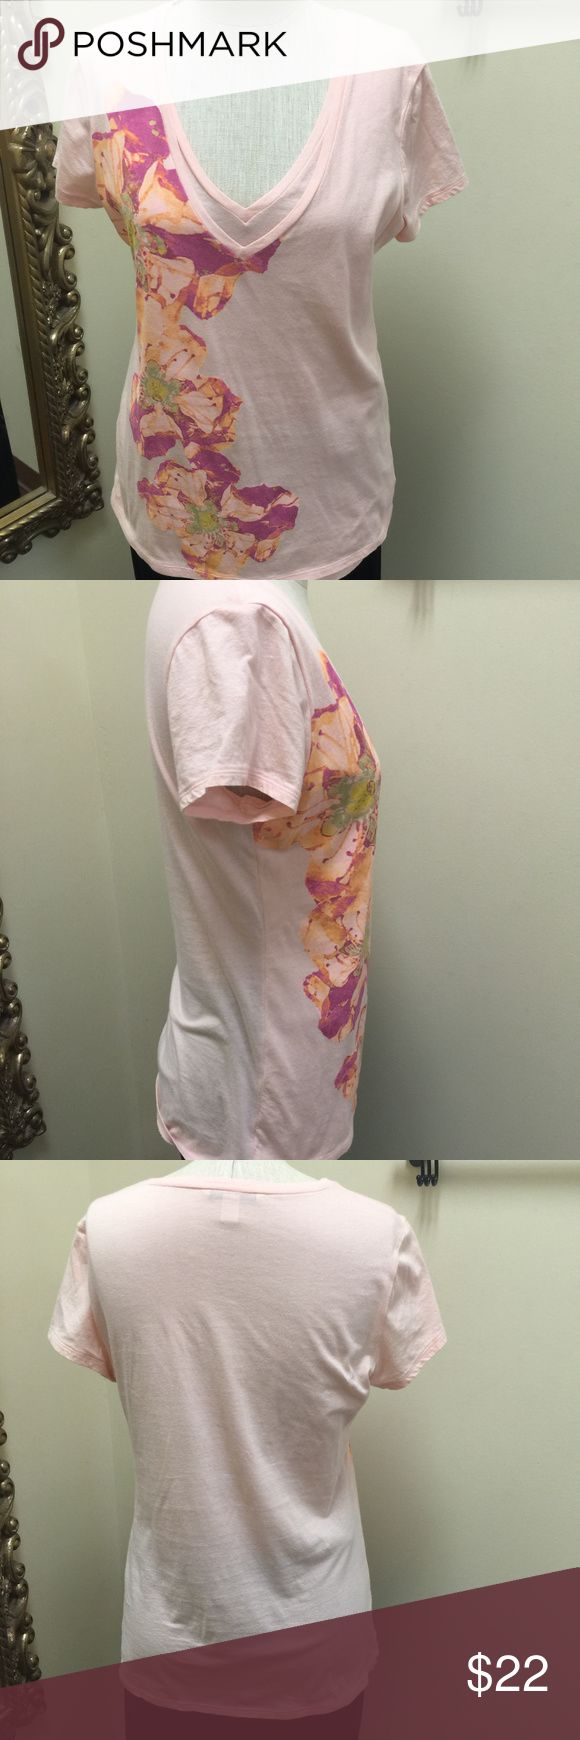 J. Crew double v-neck floral Tee pink size Medium Fun!  J Crew pink double vneck t-shirt with fushia orange olive yellow floral design on side.  The double v neck is basically creating a fully lined front of the top.  This is 100% cotton. J. Crew Tops Tees - Short Sleeve